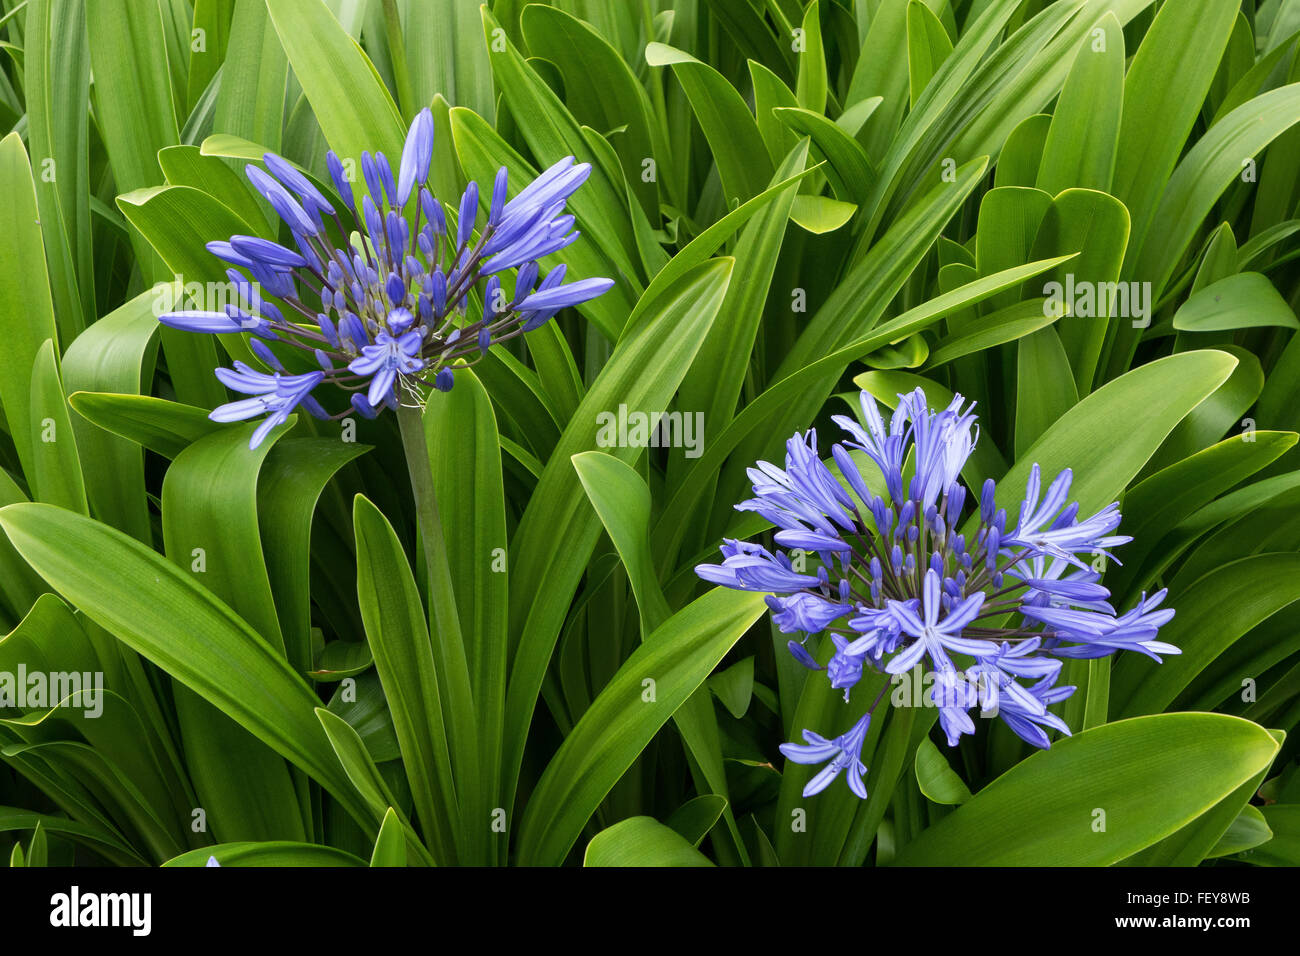 Lily of the Nile - Agapanthus flowers - Stock Image